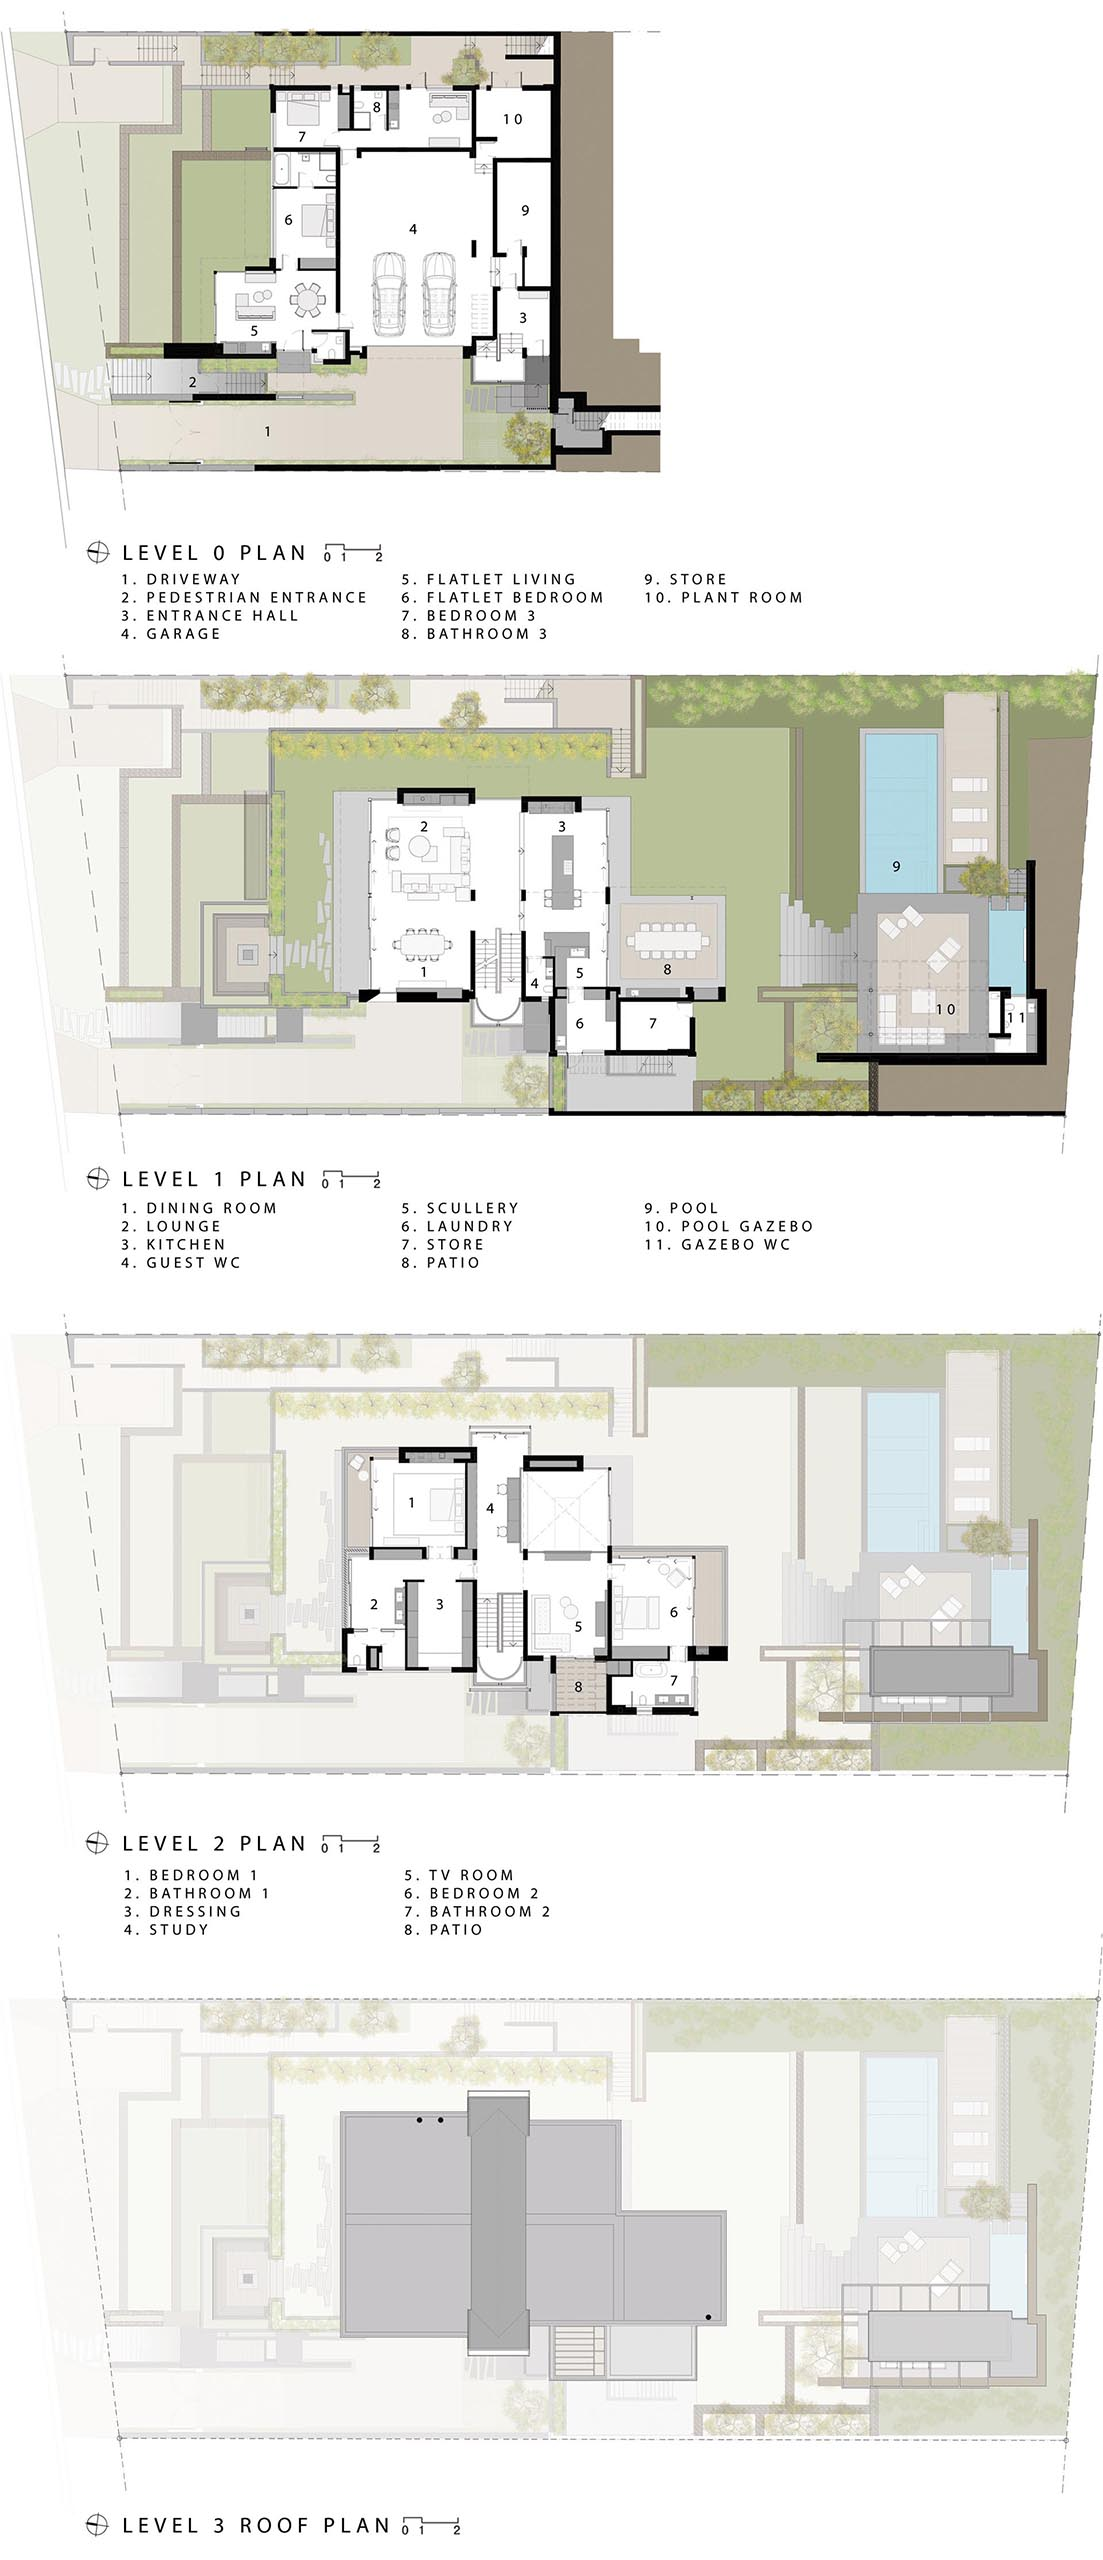 The floor plan of a modern multi-story home with landscaped yard.